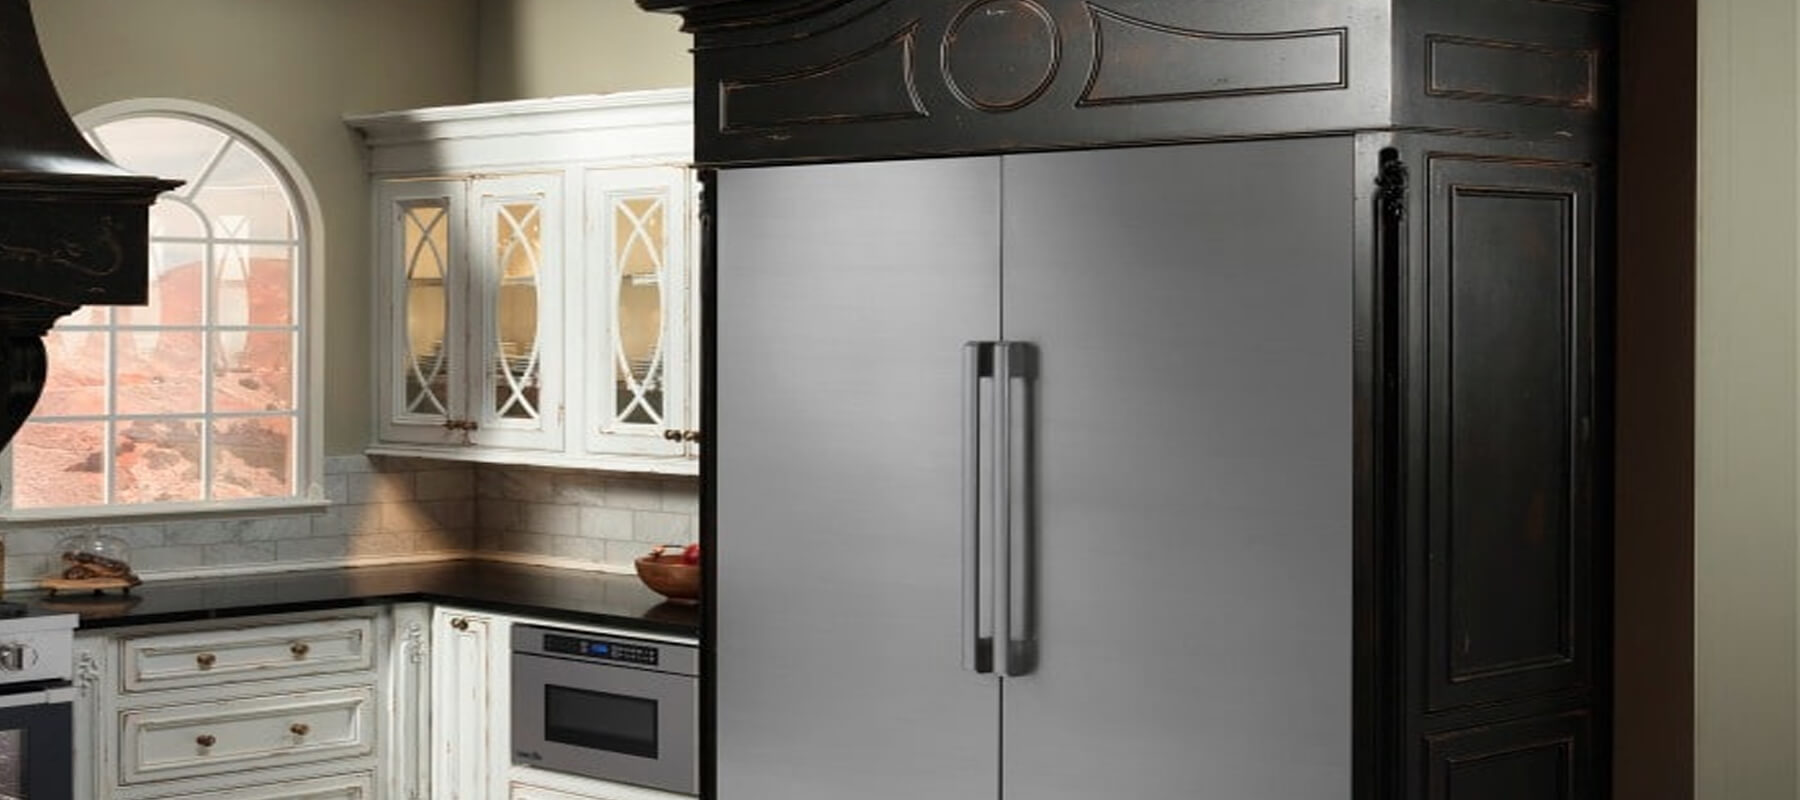 Authorized Dacor Service   Built-in Refrigerator Repair